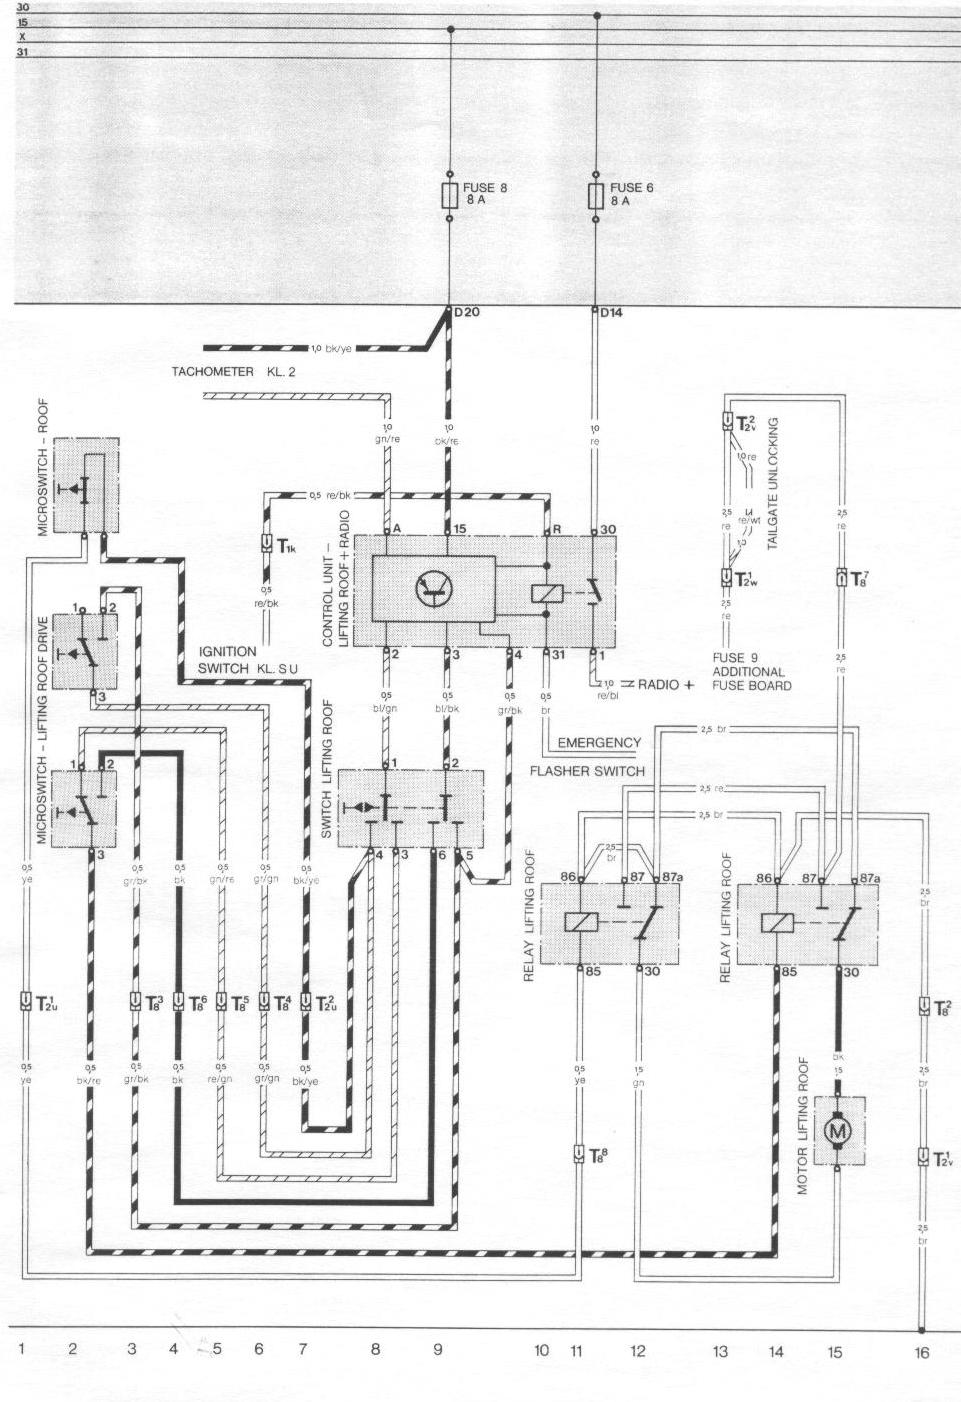 944_84_sunroof porsche 944 wiring diagram wiring diagram 1987 porsche 924s 1987 porsche 944 fuse box diagram at n-0.co